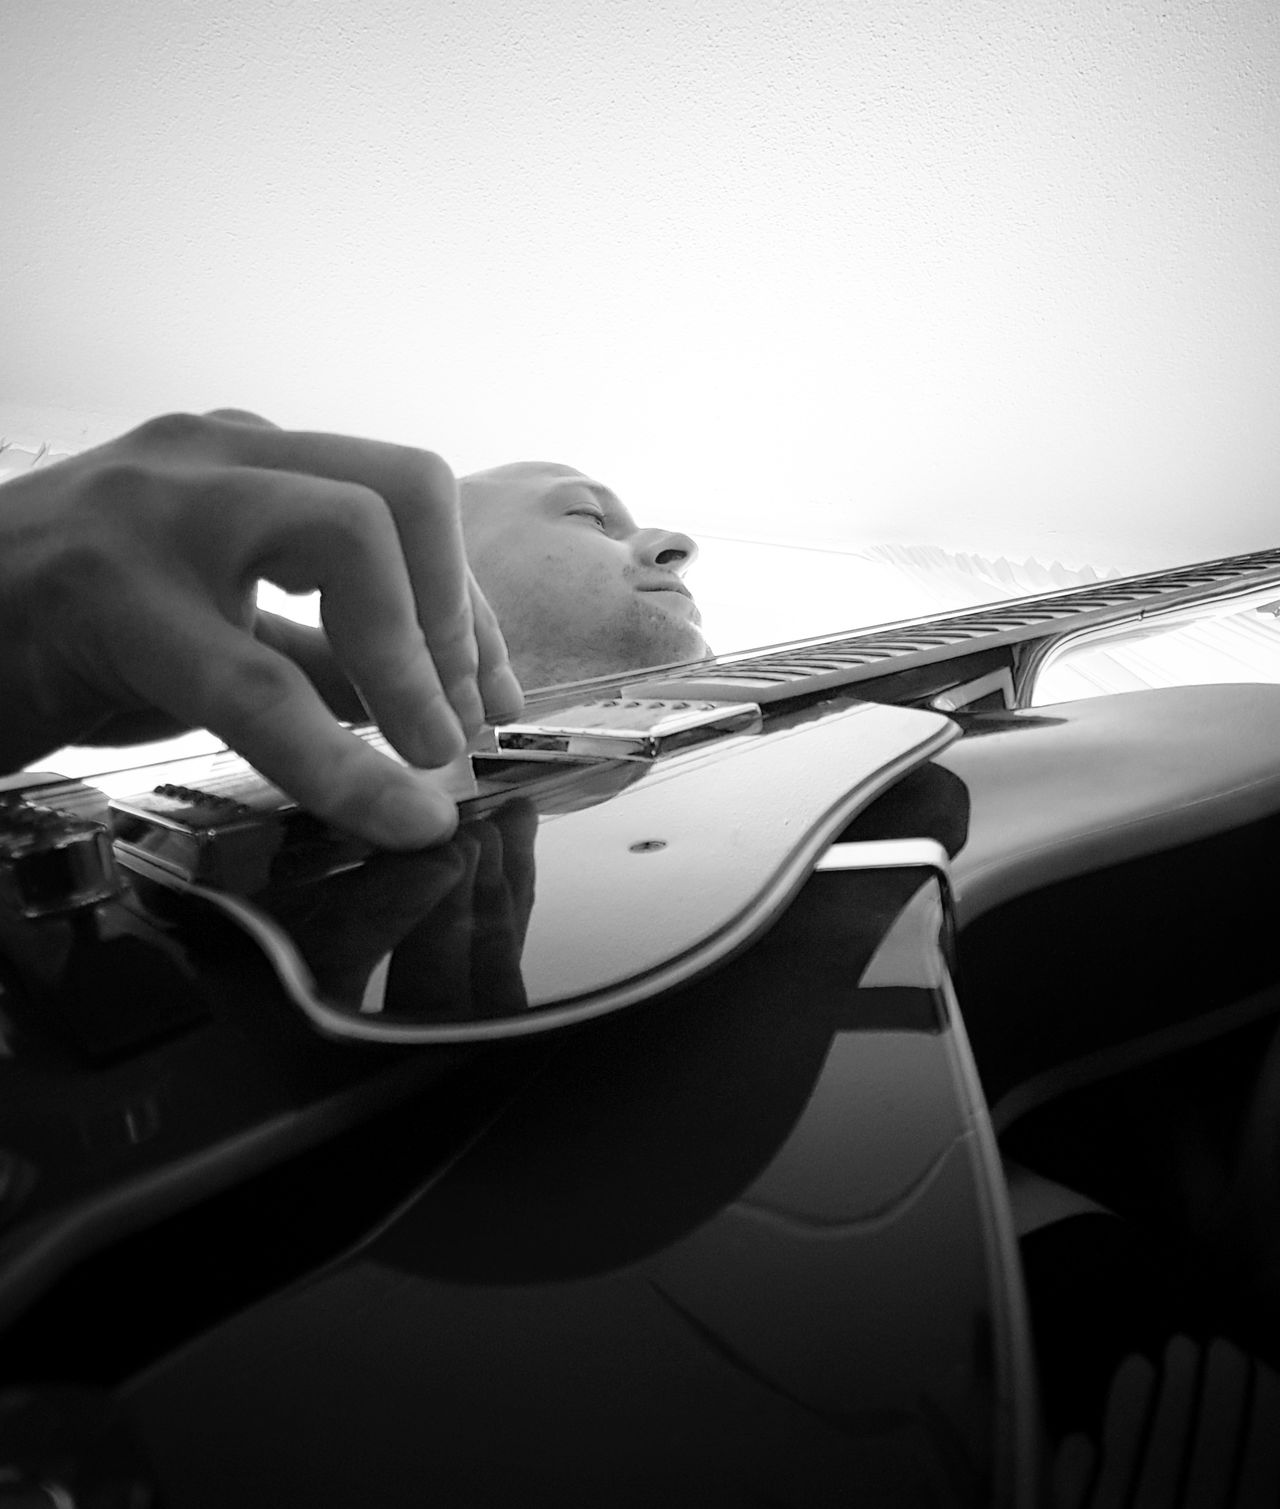 One Person One Man Only Musical Instrument Sgs7edge Thats Me  Ibanez Playing The Blues Guitar Player Blackandwhite Black & White Blackandwhite Photography Eye4photography  Snapspeed Fingerpicking Hand JustMe Chill Mode Cube Chilling On A Sunday Human Body Part Arts Culture And Entertainment EyeEmBestPics Capture The Moment Playing The Guitar